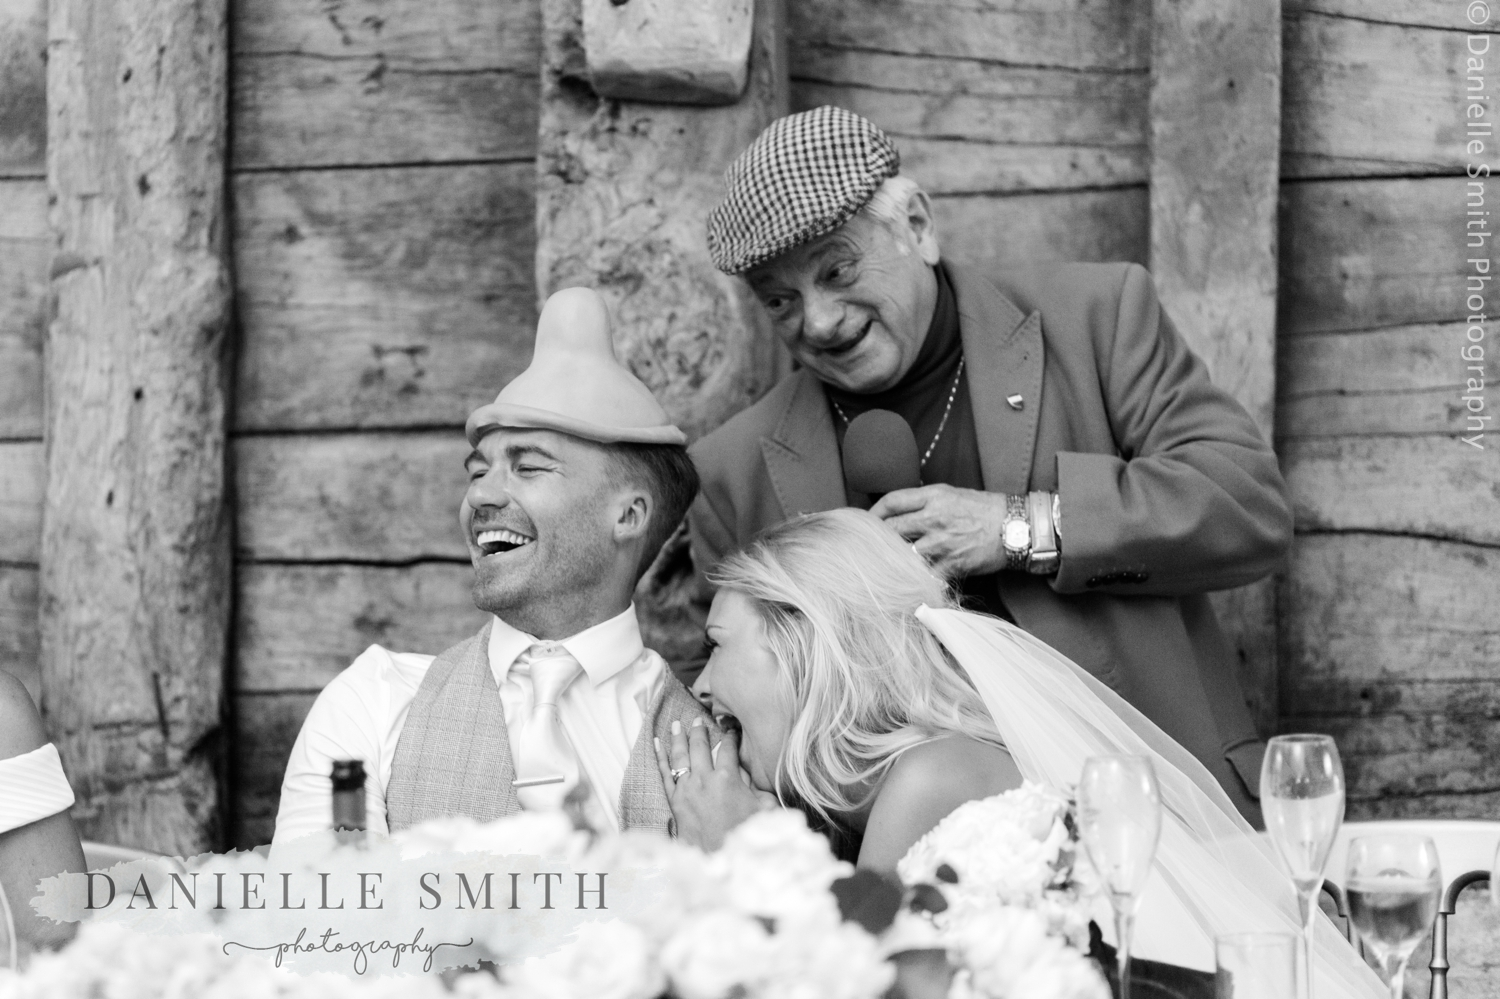 del boy impersonator with bride and groom